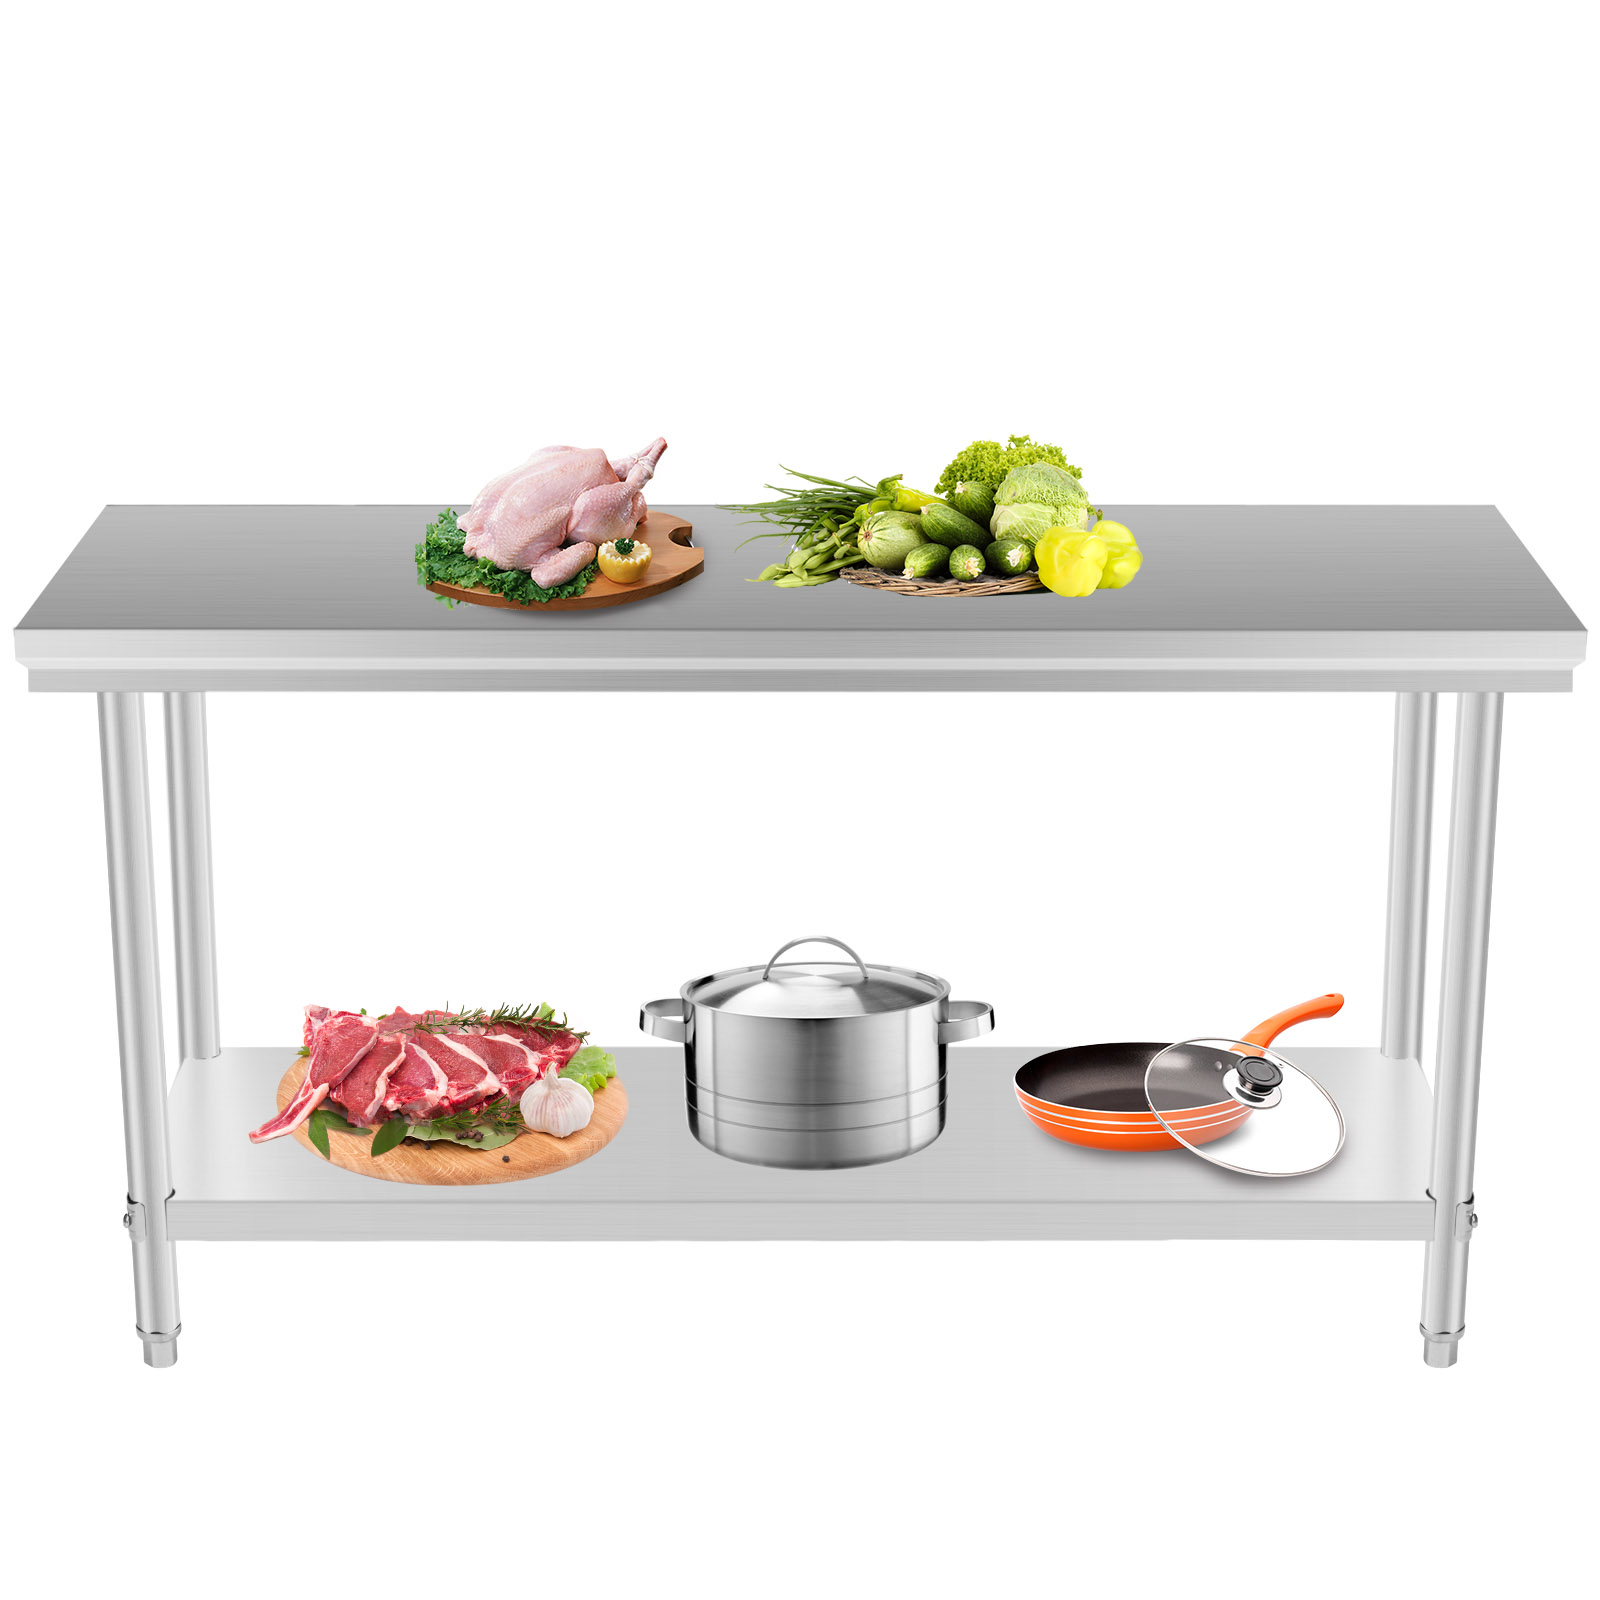 24 x 48 stainless steel kitchen work prep table storage space nsf shelves. Black Bedroom Furniture Sets. Home Design Ideas